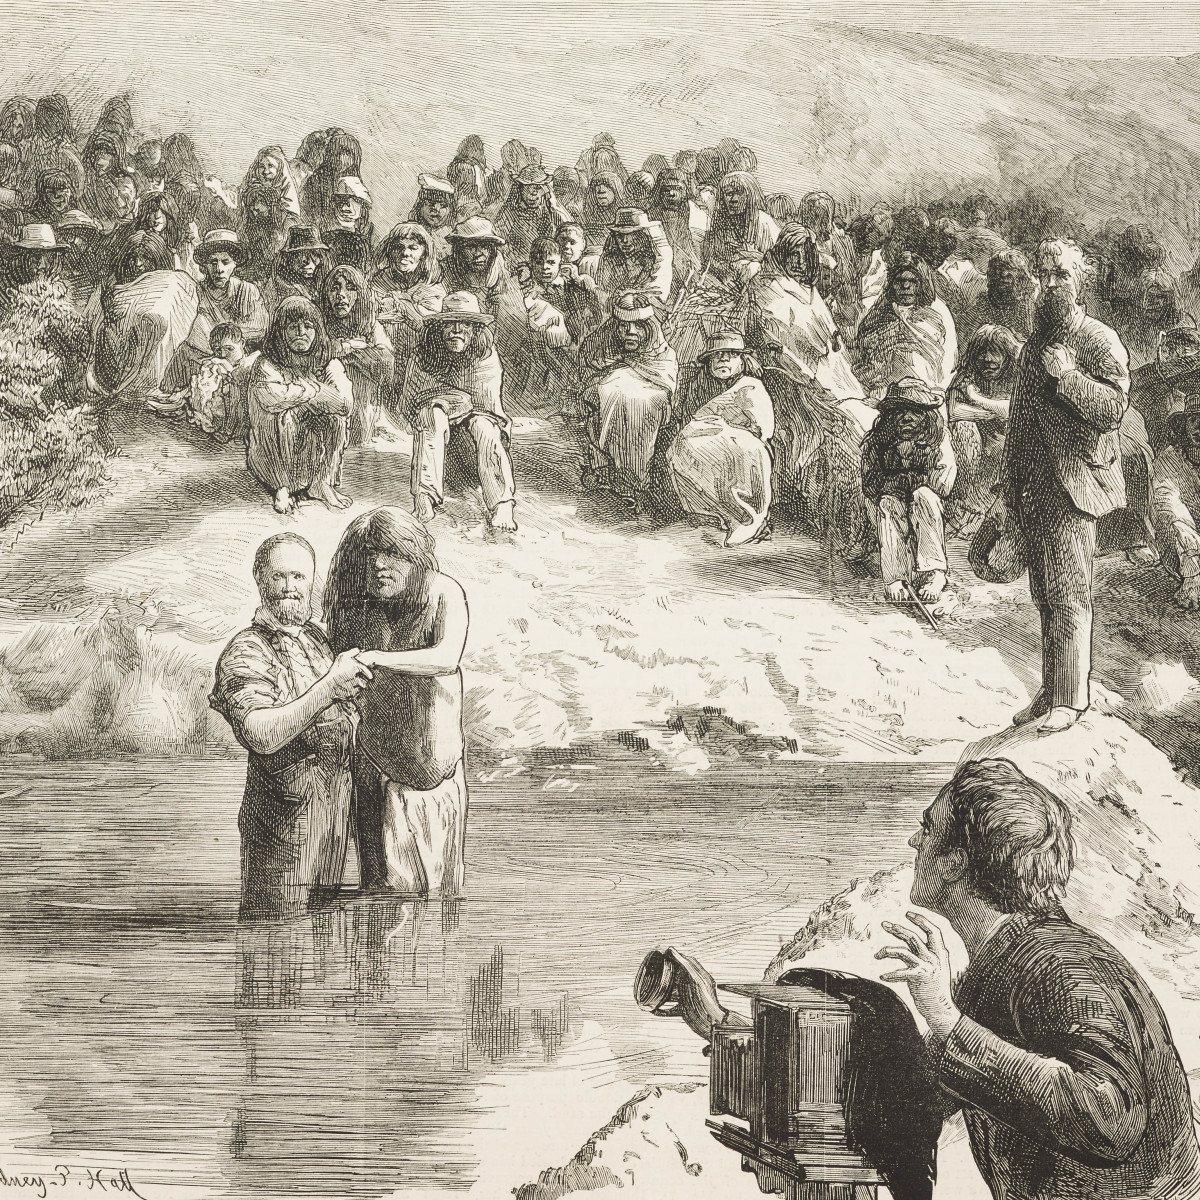 An 1882 illustration of Mormon men baptizing a large group of Native Americans.